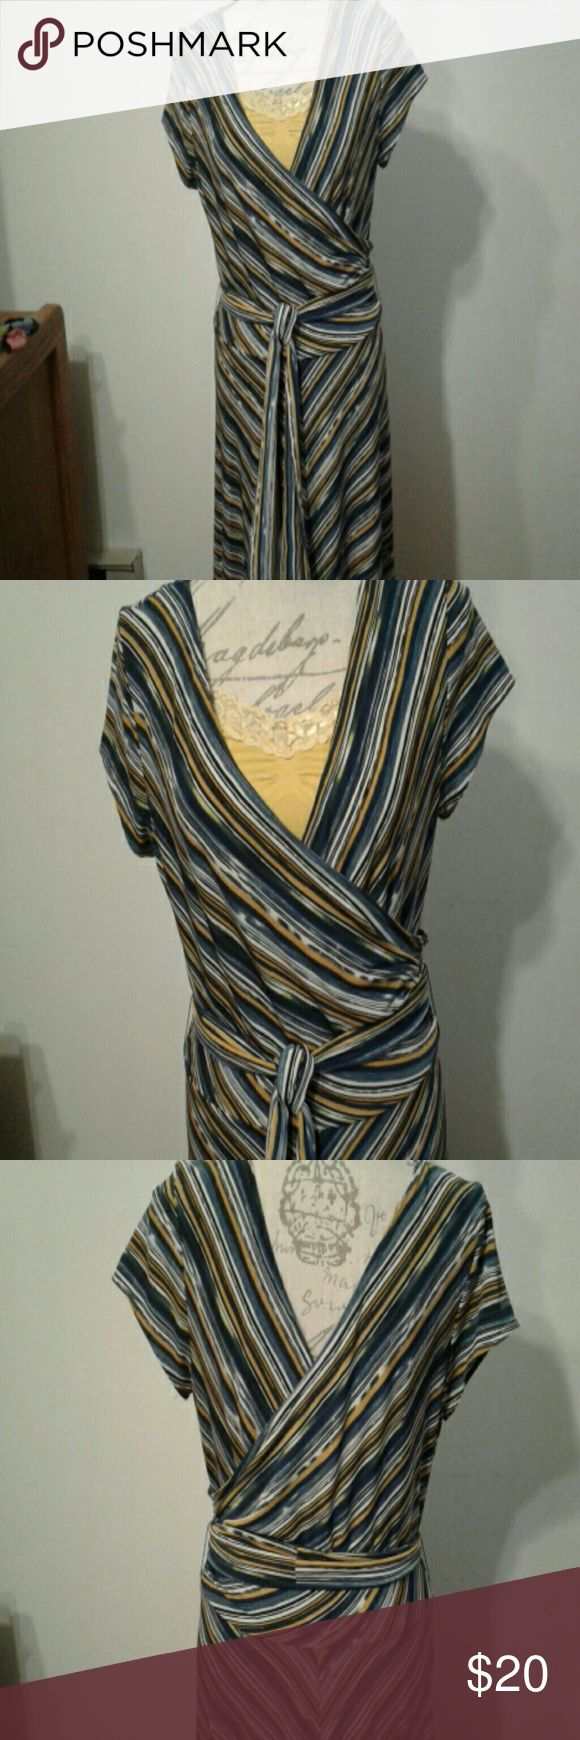 "Dress K Studio soft fitted dress. Polyester /spandex. A small size 14 Smartly striped in blues,  yellow and white.  Belt can be worn on front or side. 27 "" from  waist to hem. Paired with my yellow cami- style tank top or wear alone. Dress $20 with yellow cami $30. K Studio  Dresses Midi"